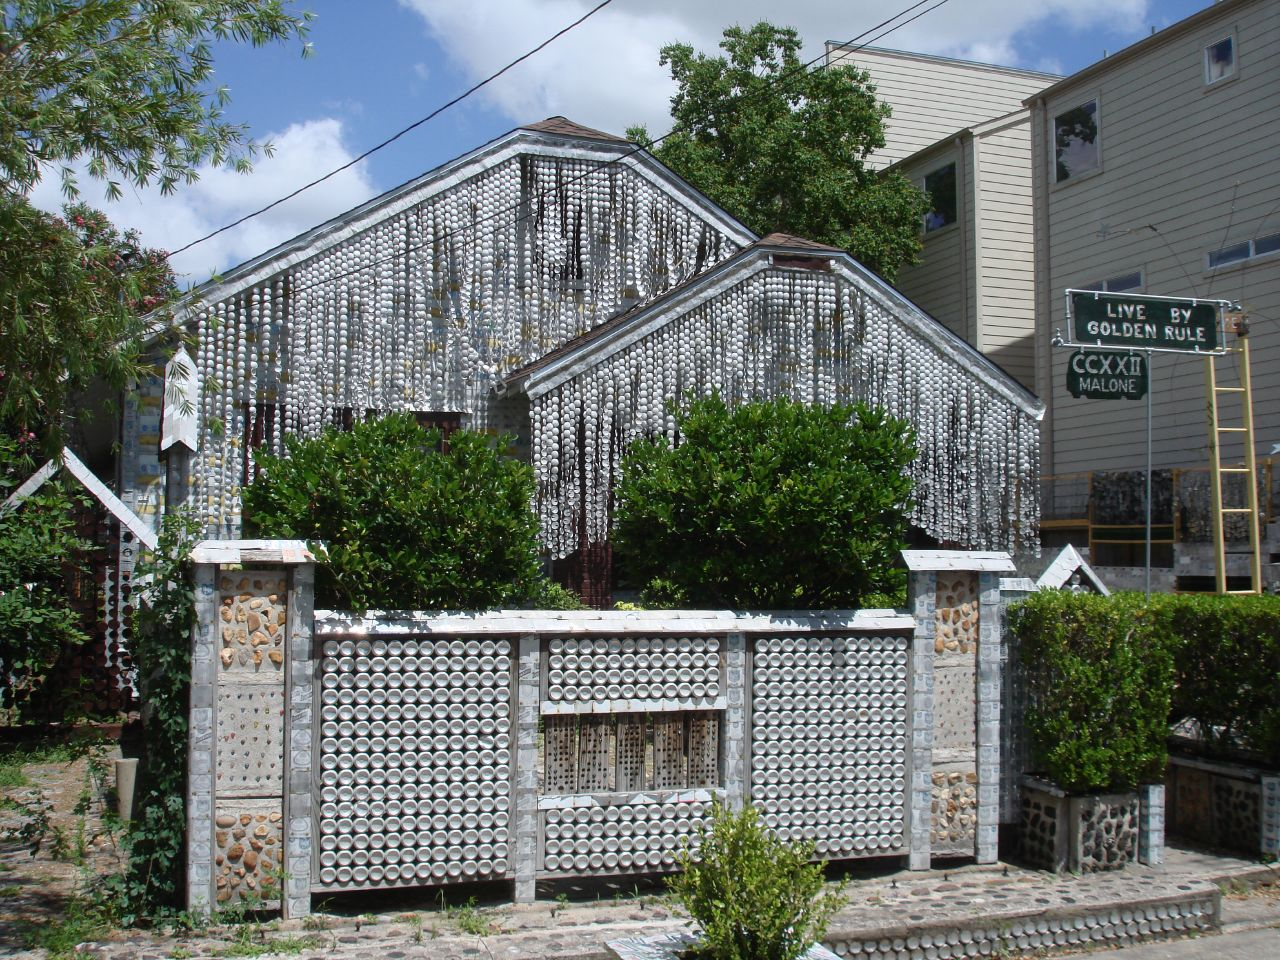 House Made of Beer Cans